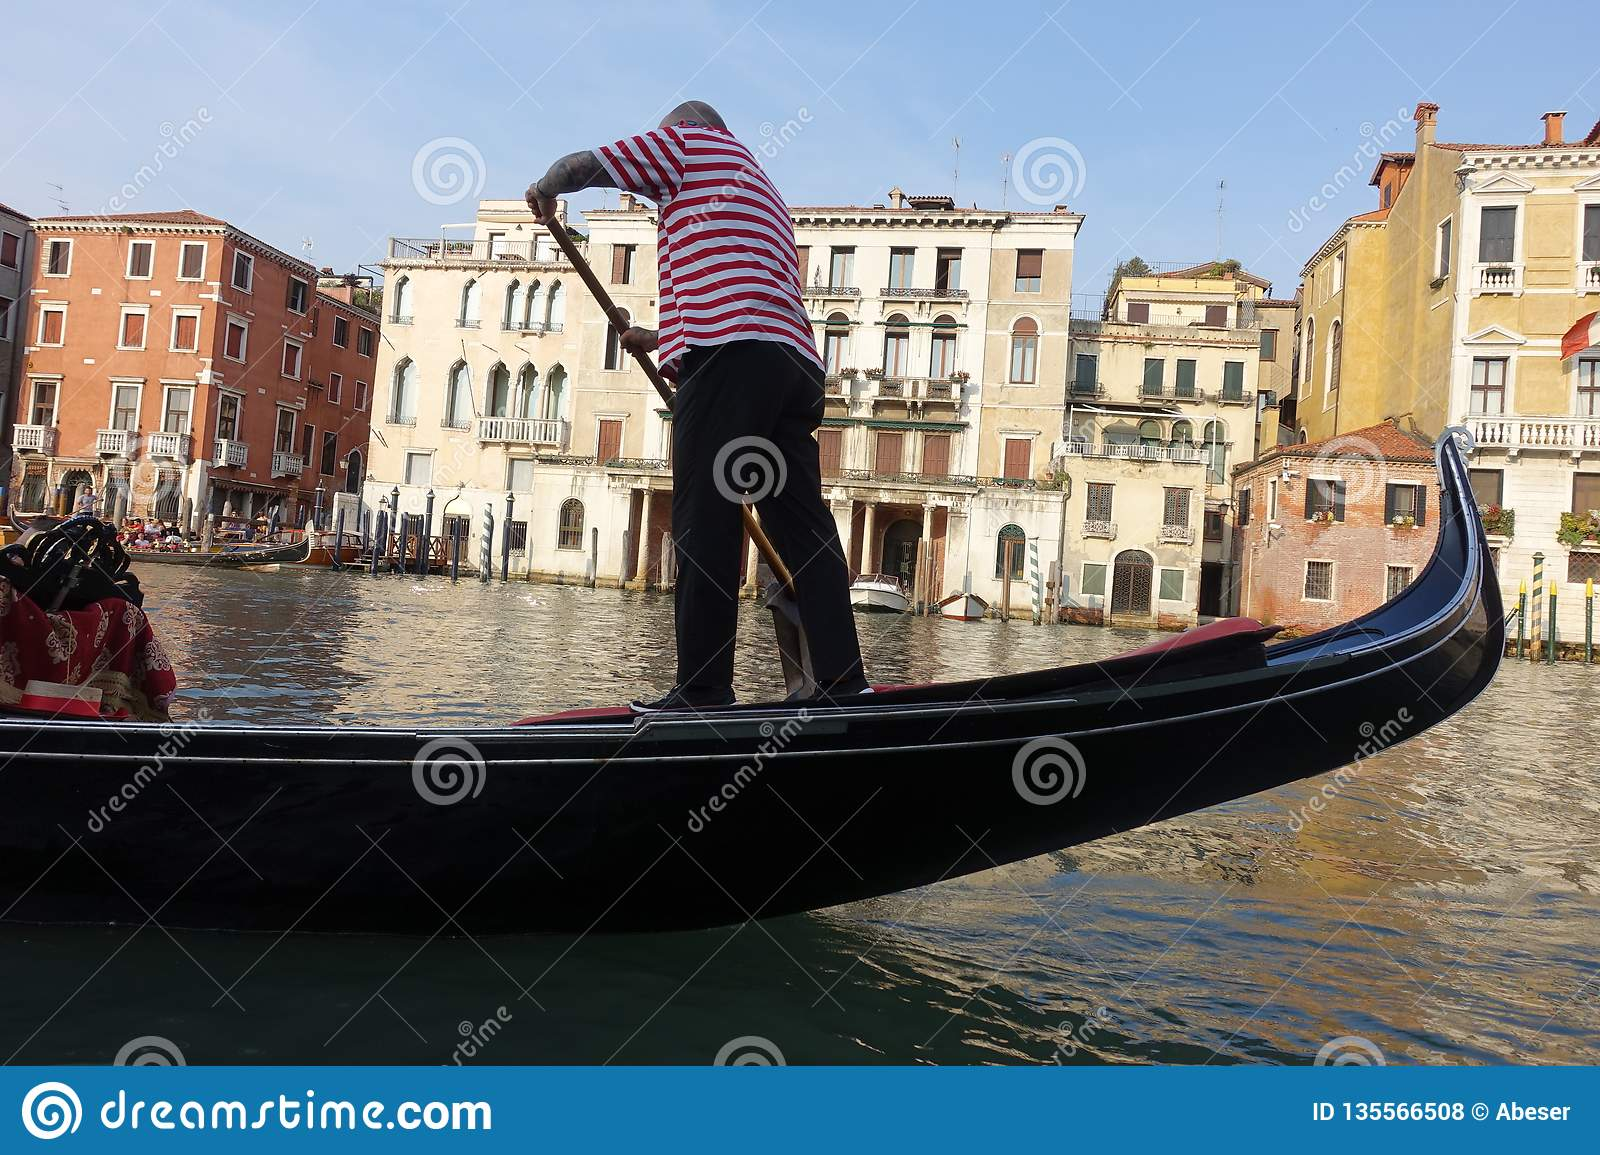 Venice Venedig Gondolas In Venice Italy Editorial Stock Photo Image Of Days